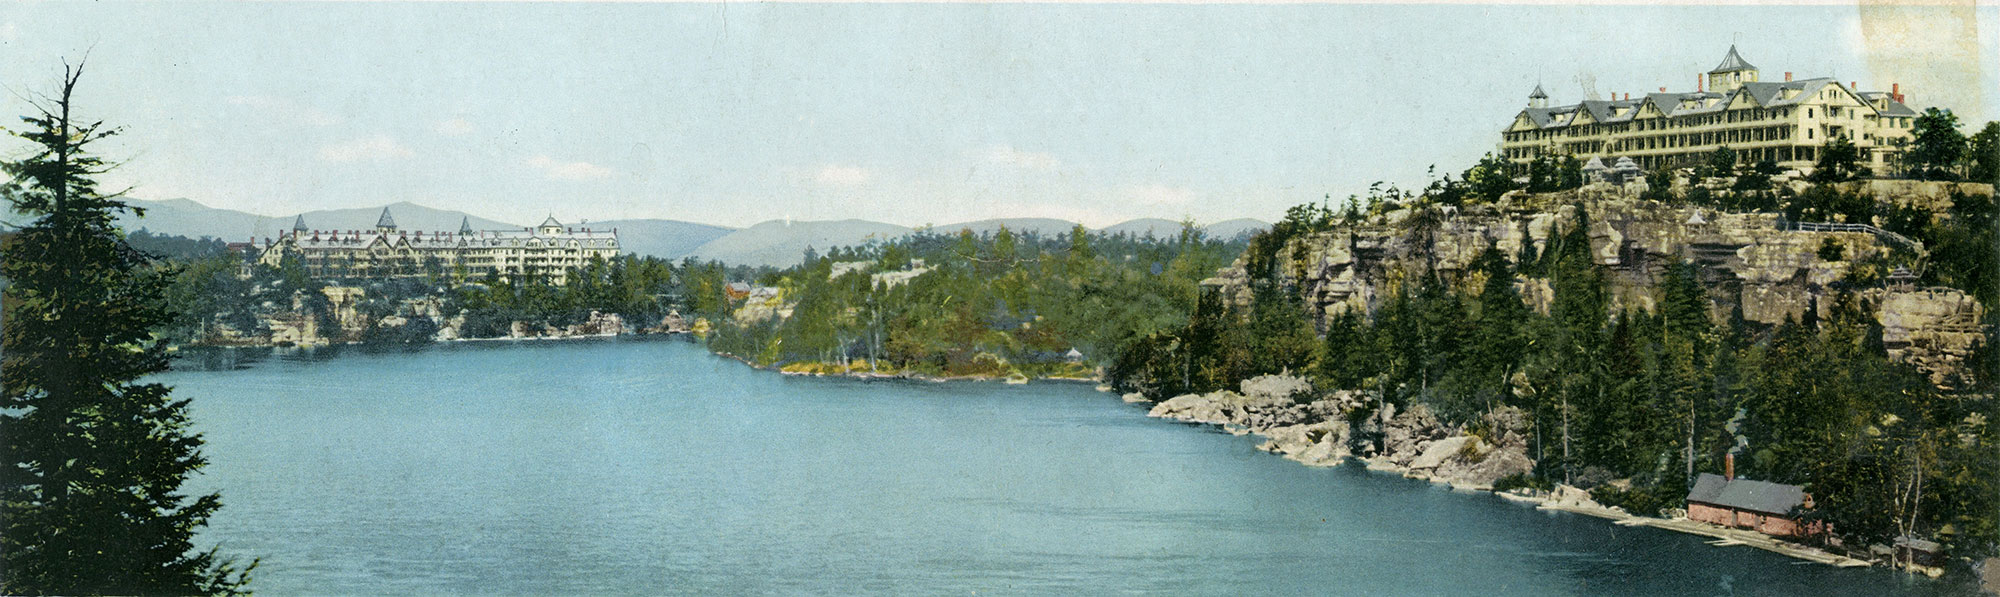 Lake-Minnewaska-TWo-HOTELS-0405-Two-page-panorama